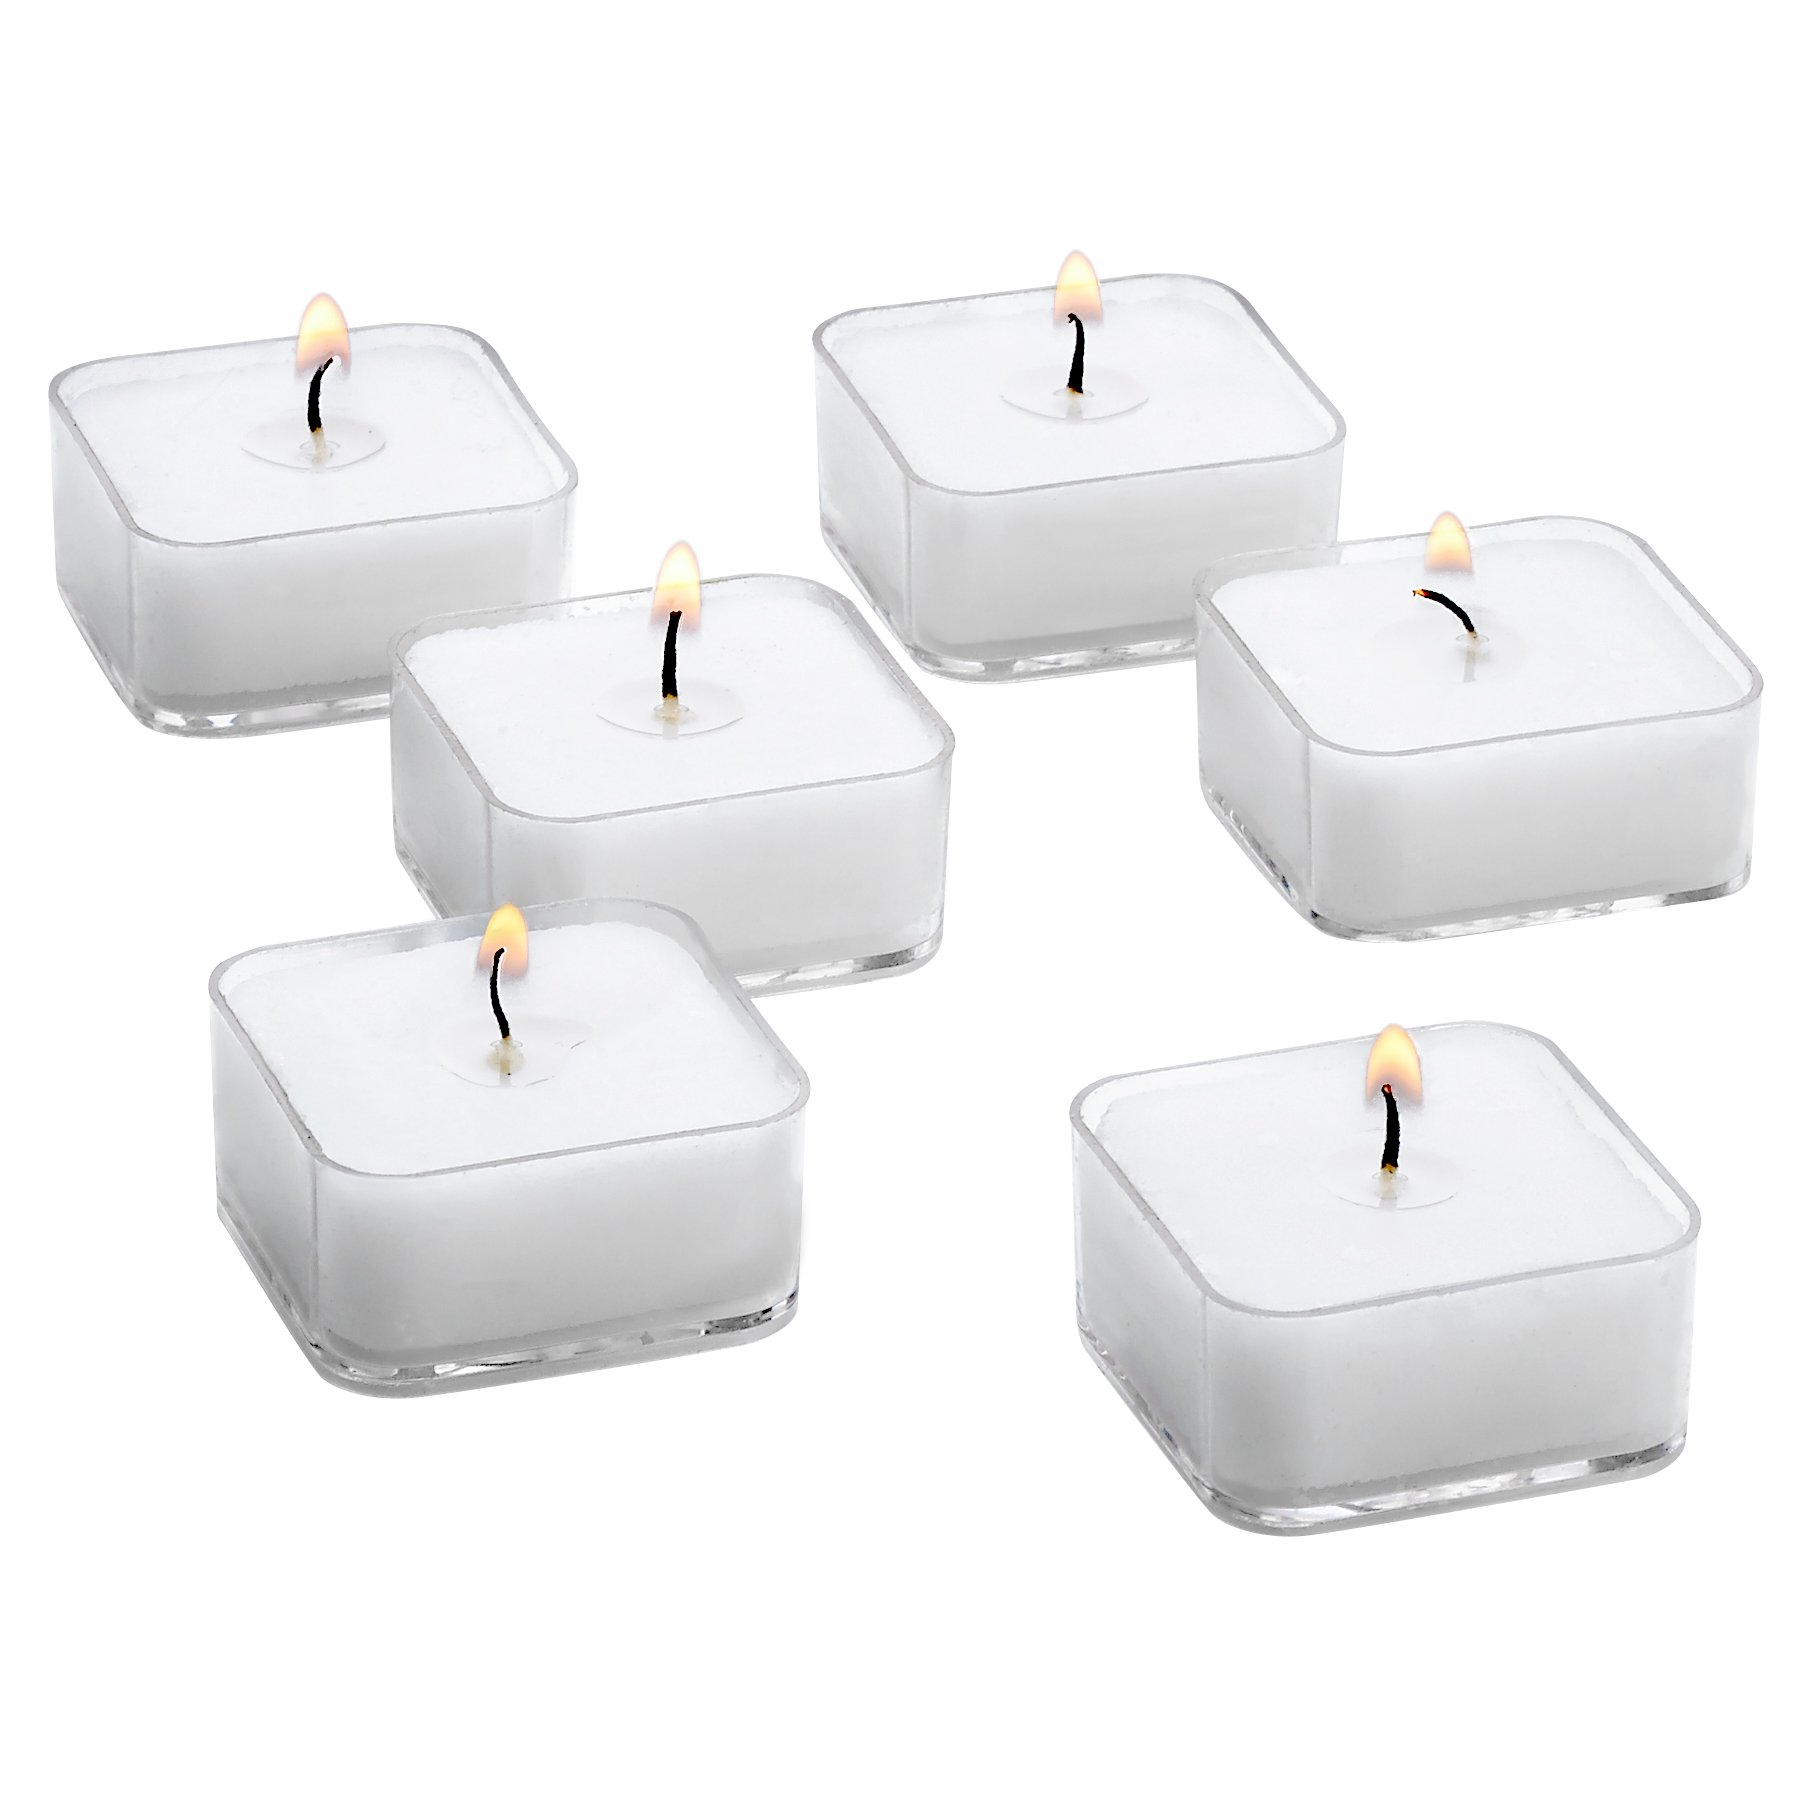 White Square Tealight Candles with Clear Cup - Bulk Set of 72 Unscented Tea Lights - 5 Hour Burn Time